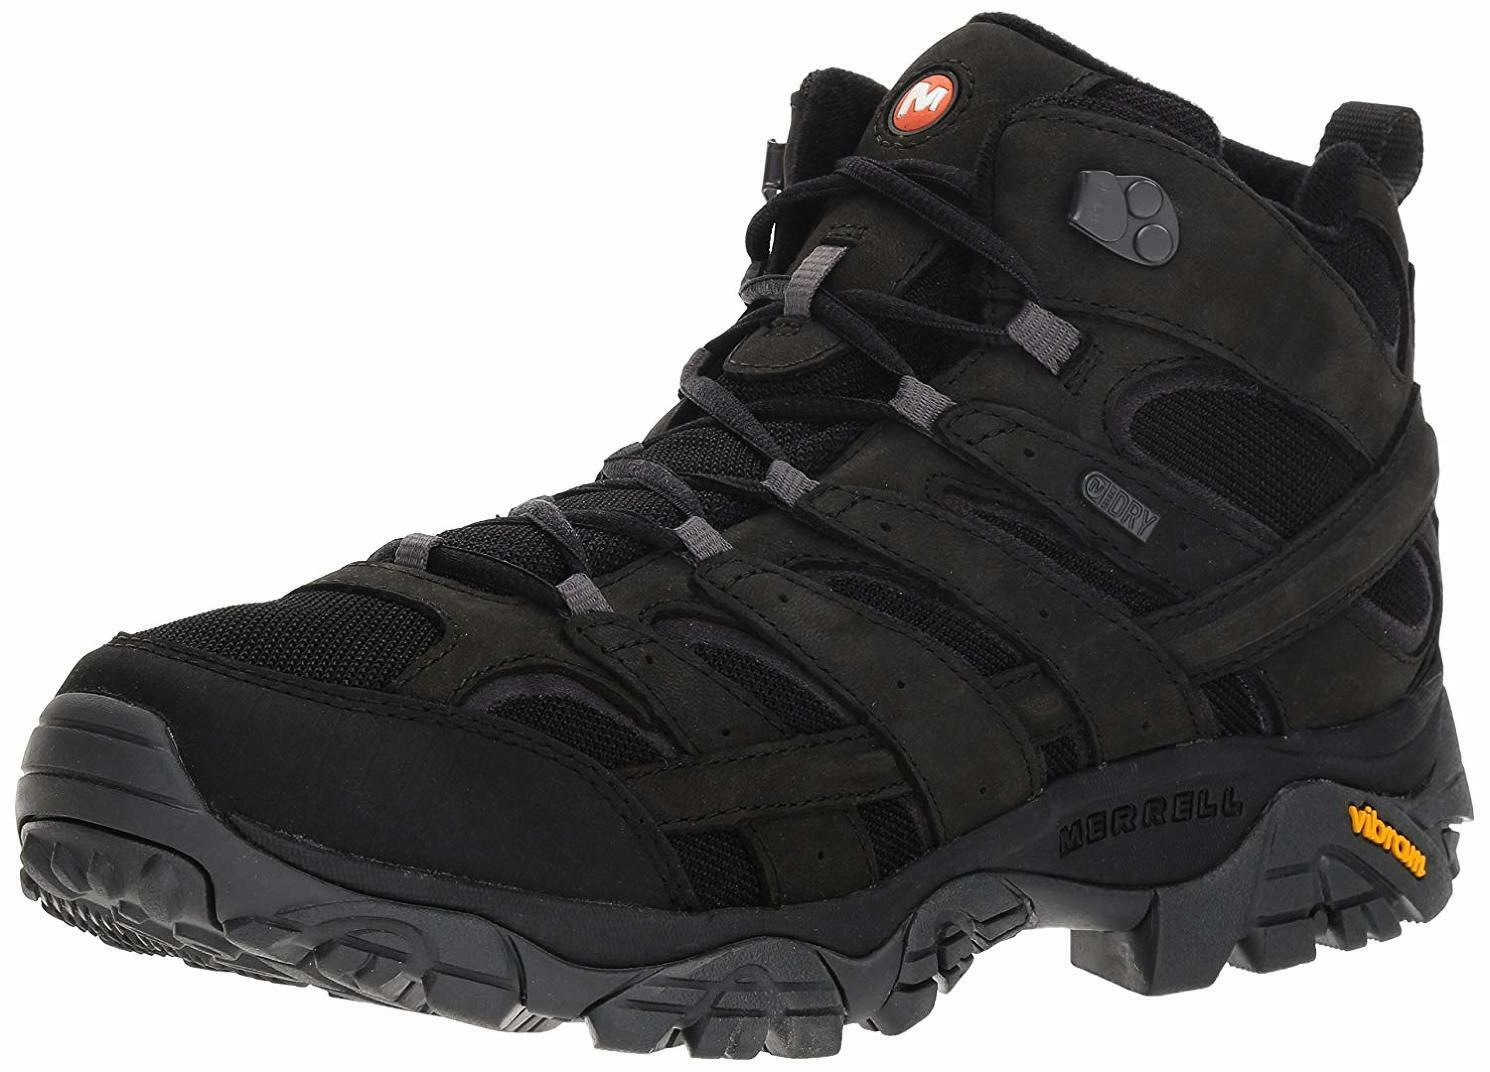 on sale 7e53a 9819b Merrell Men s Moab 2 Smooth Mid Waterproof Hiking Boot, - Choose SZ color